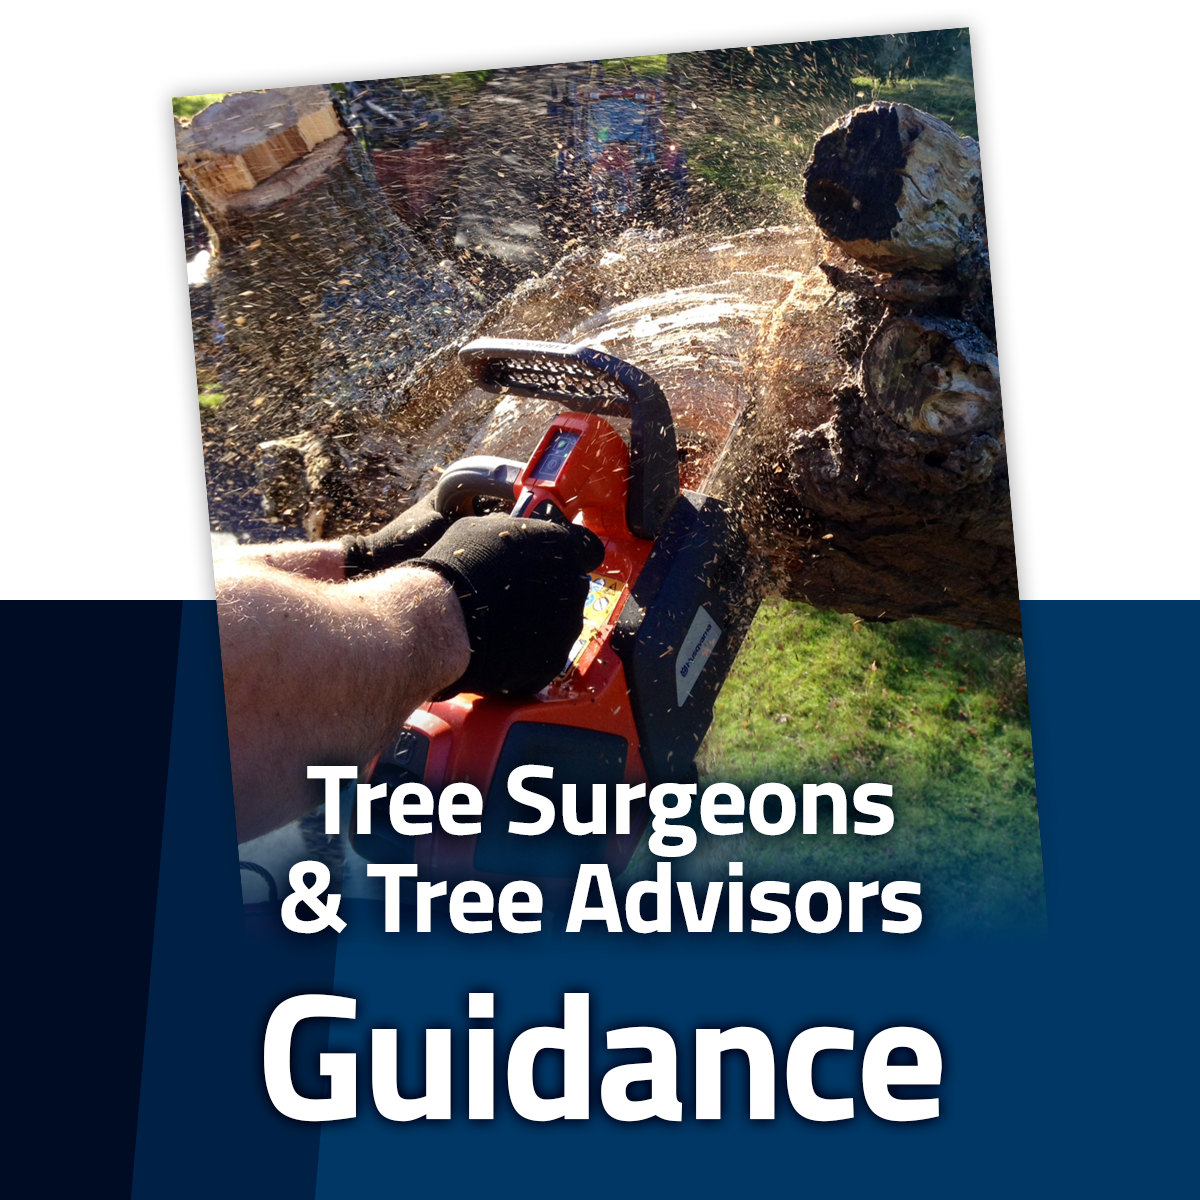 Tree Surgeons & Tree Advisors